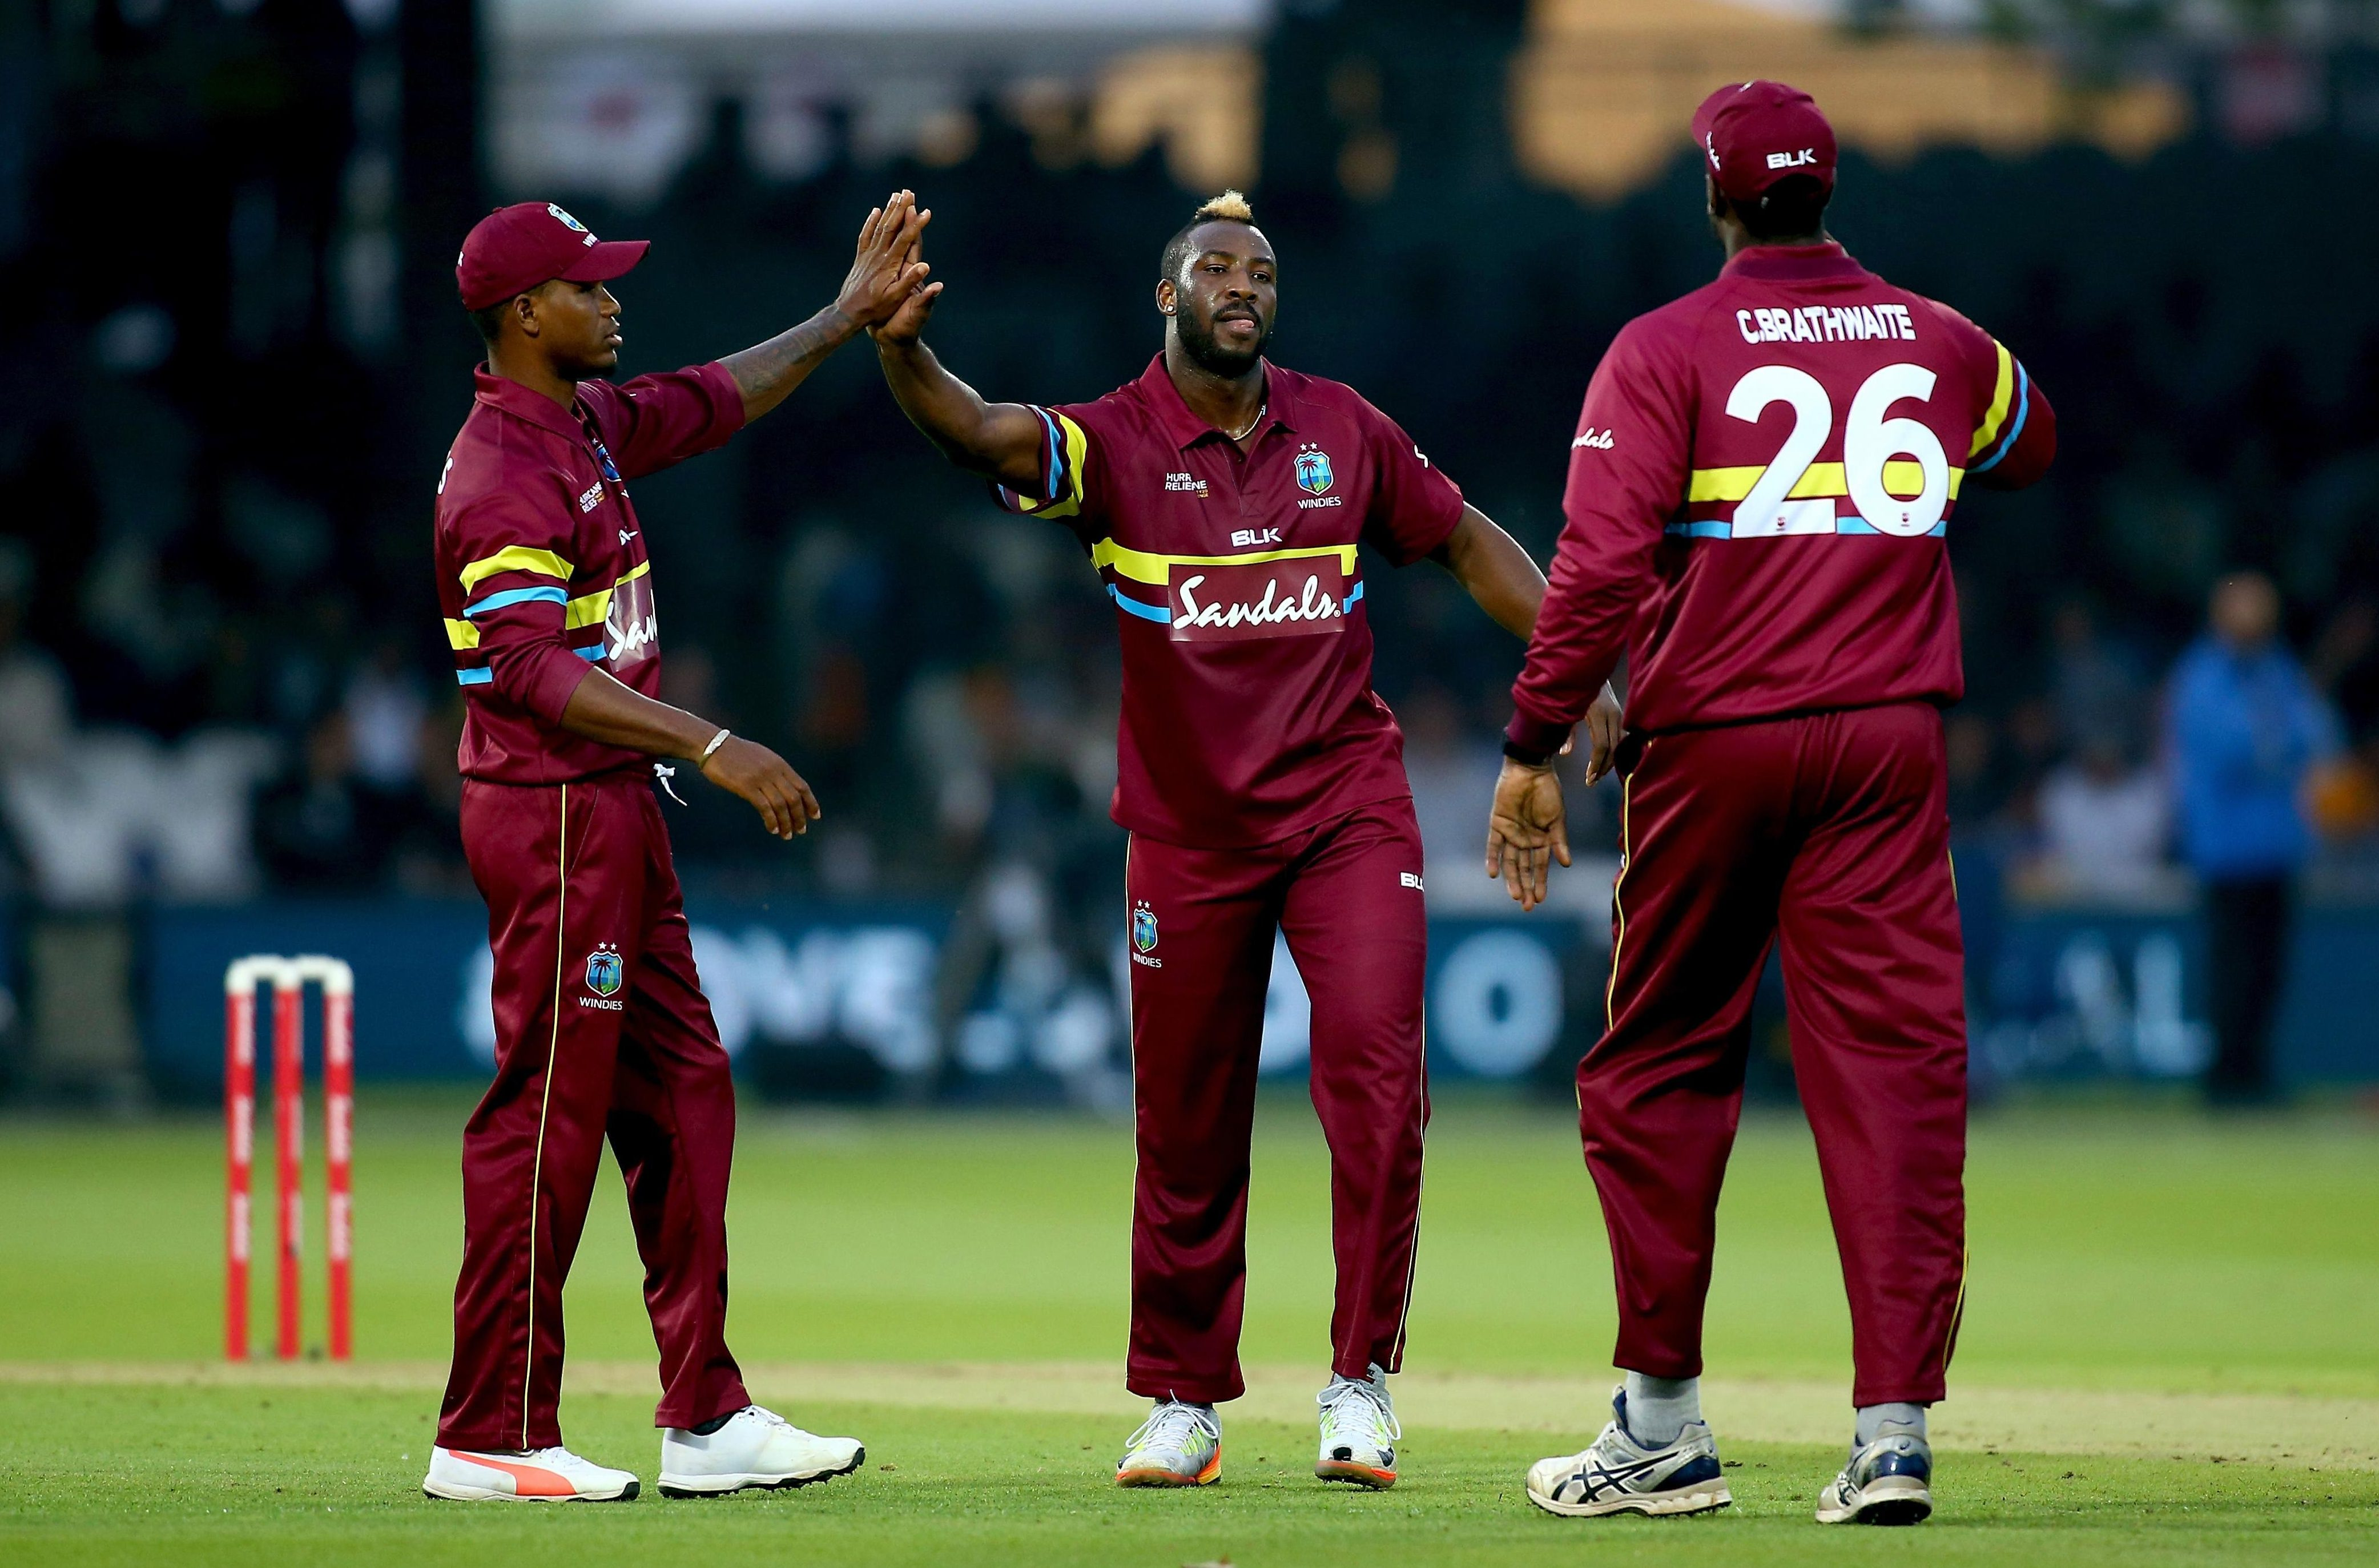 IPL star Andre Russell picked up two wickets for West Indies